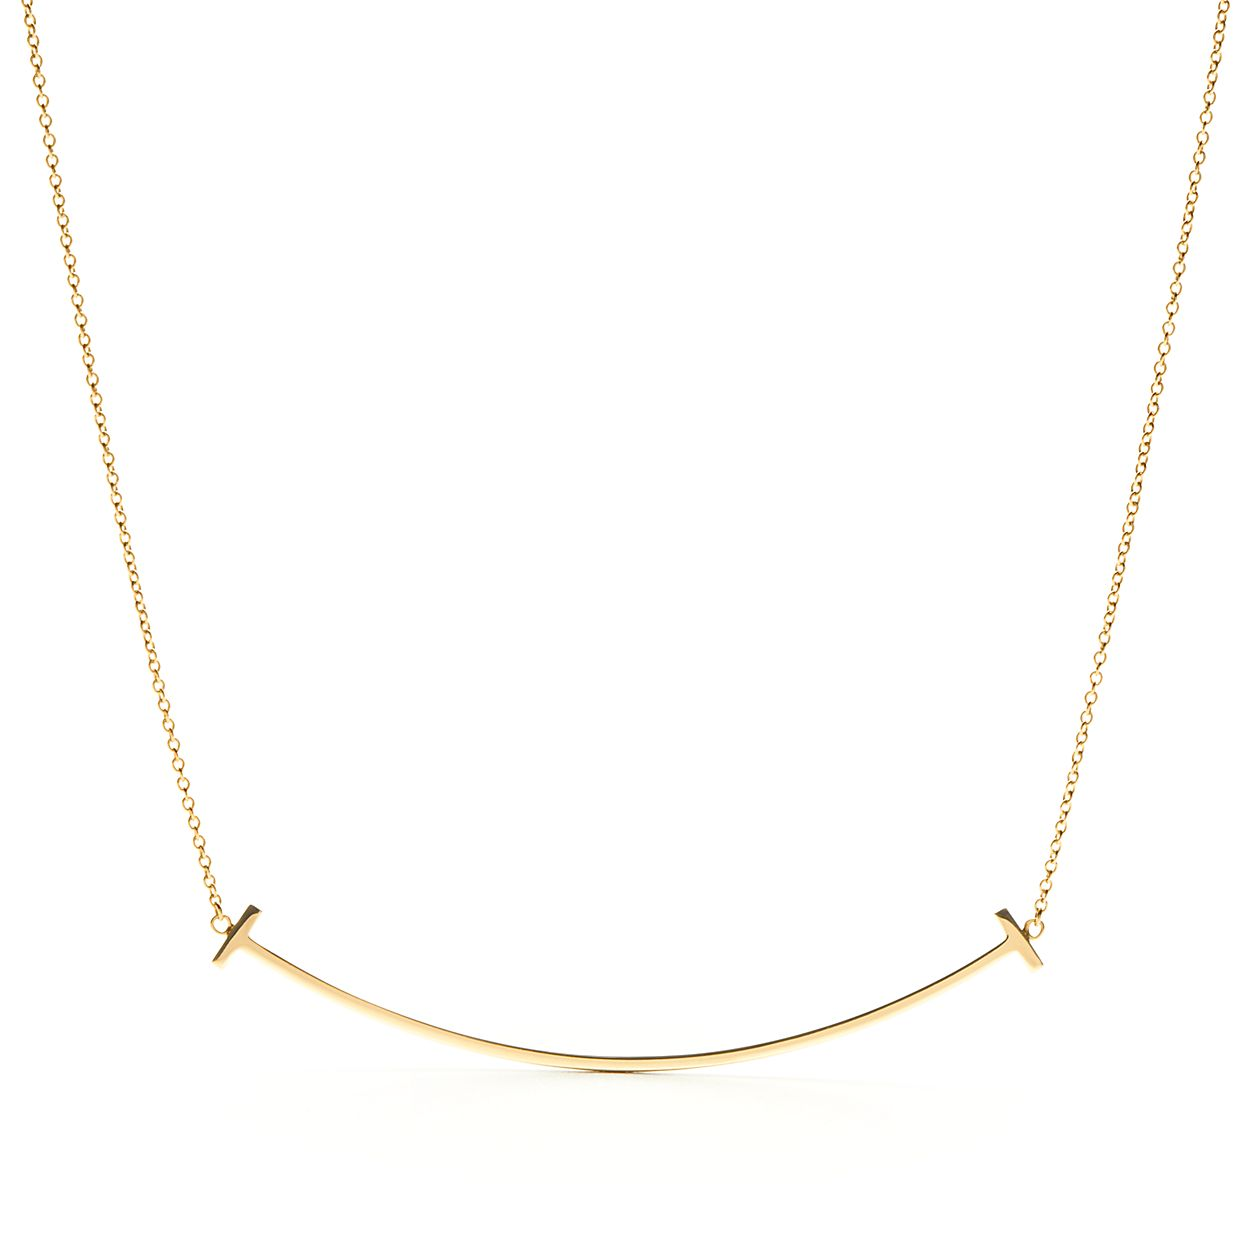 gold s b womens women necklace pendant necklaces com amazon